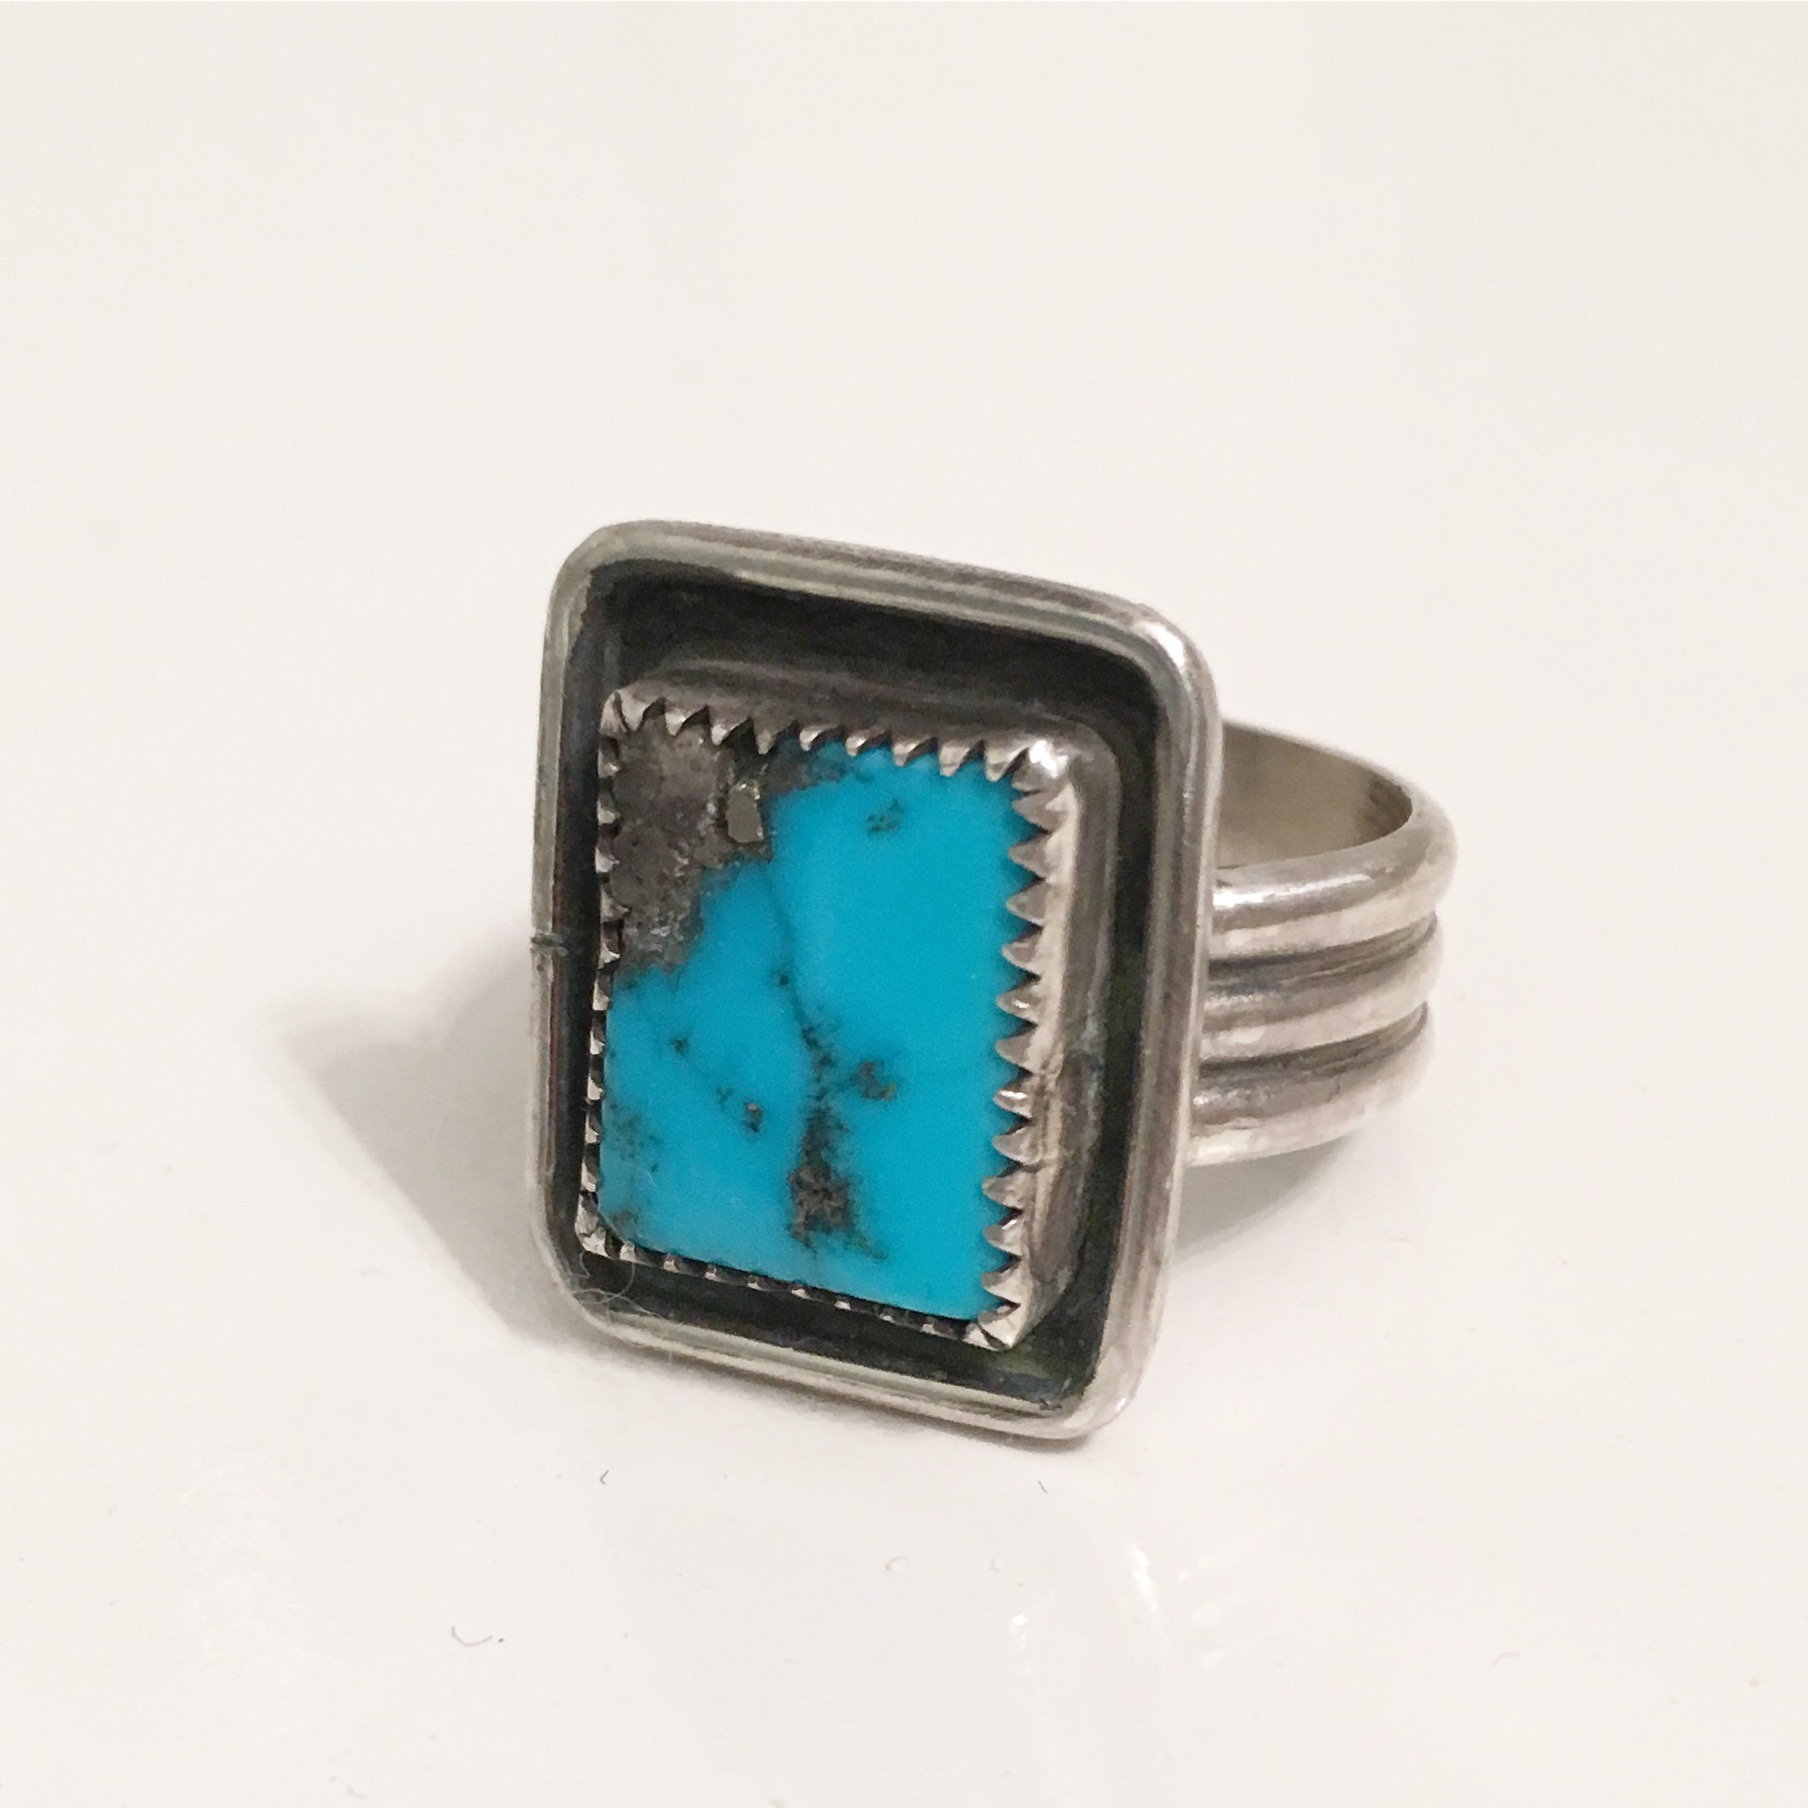 Men's turquoise ring.